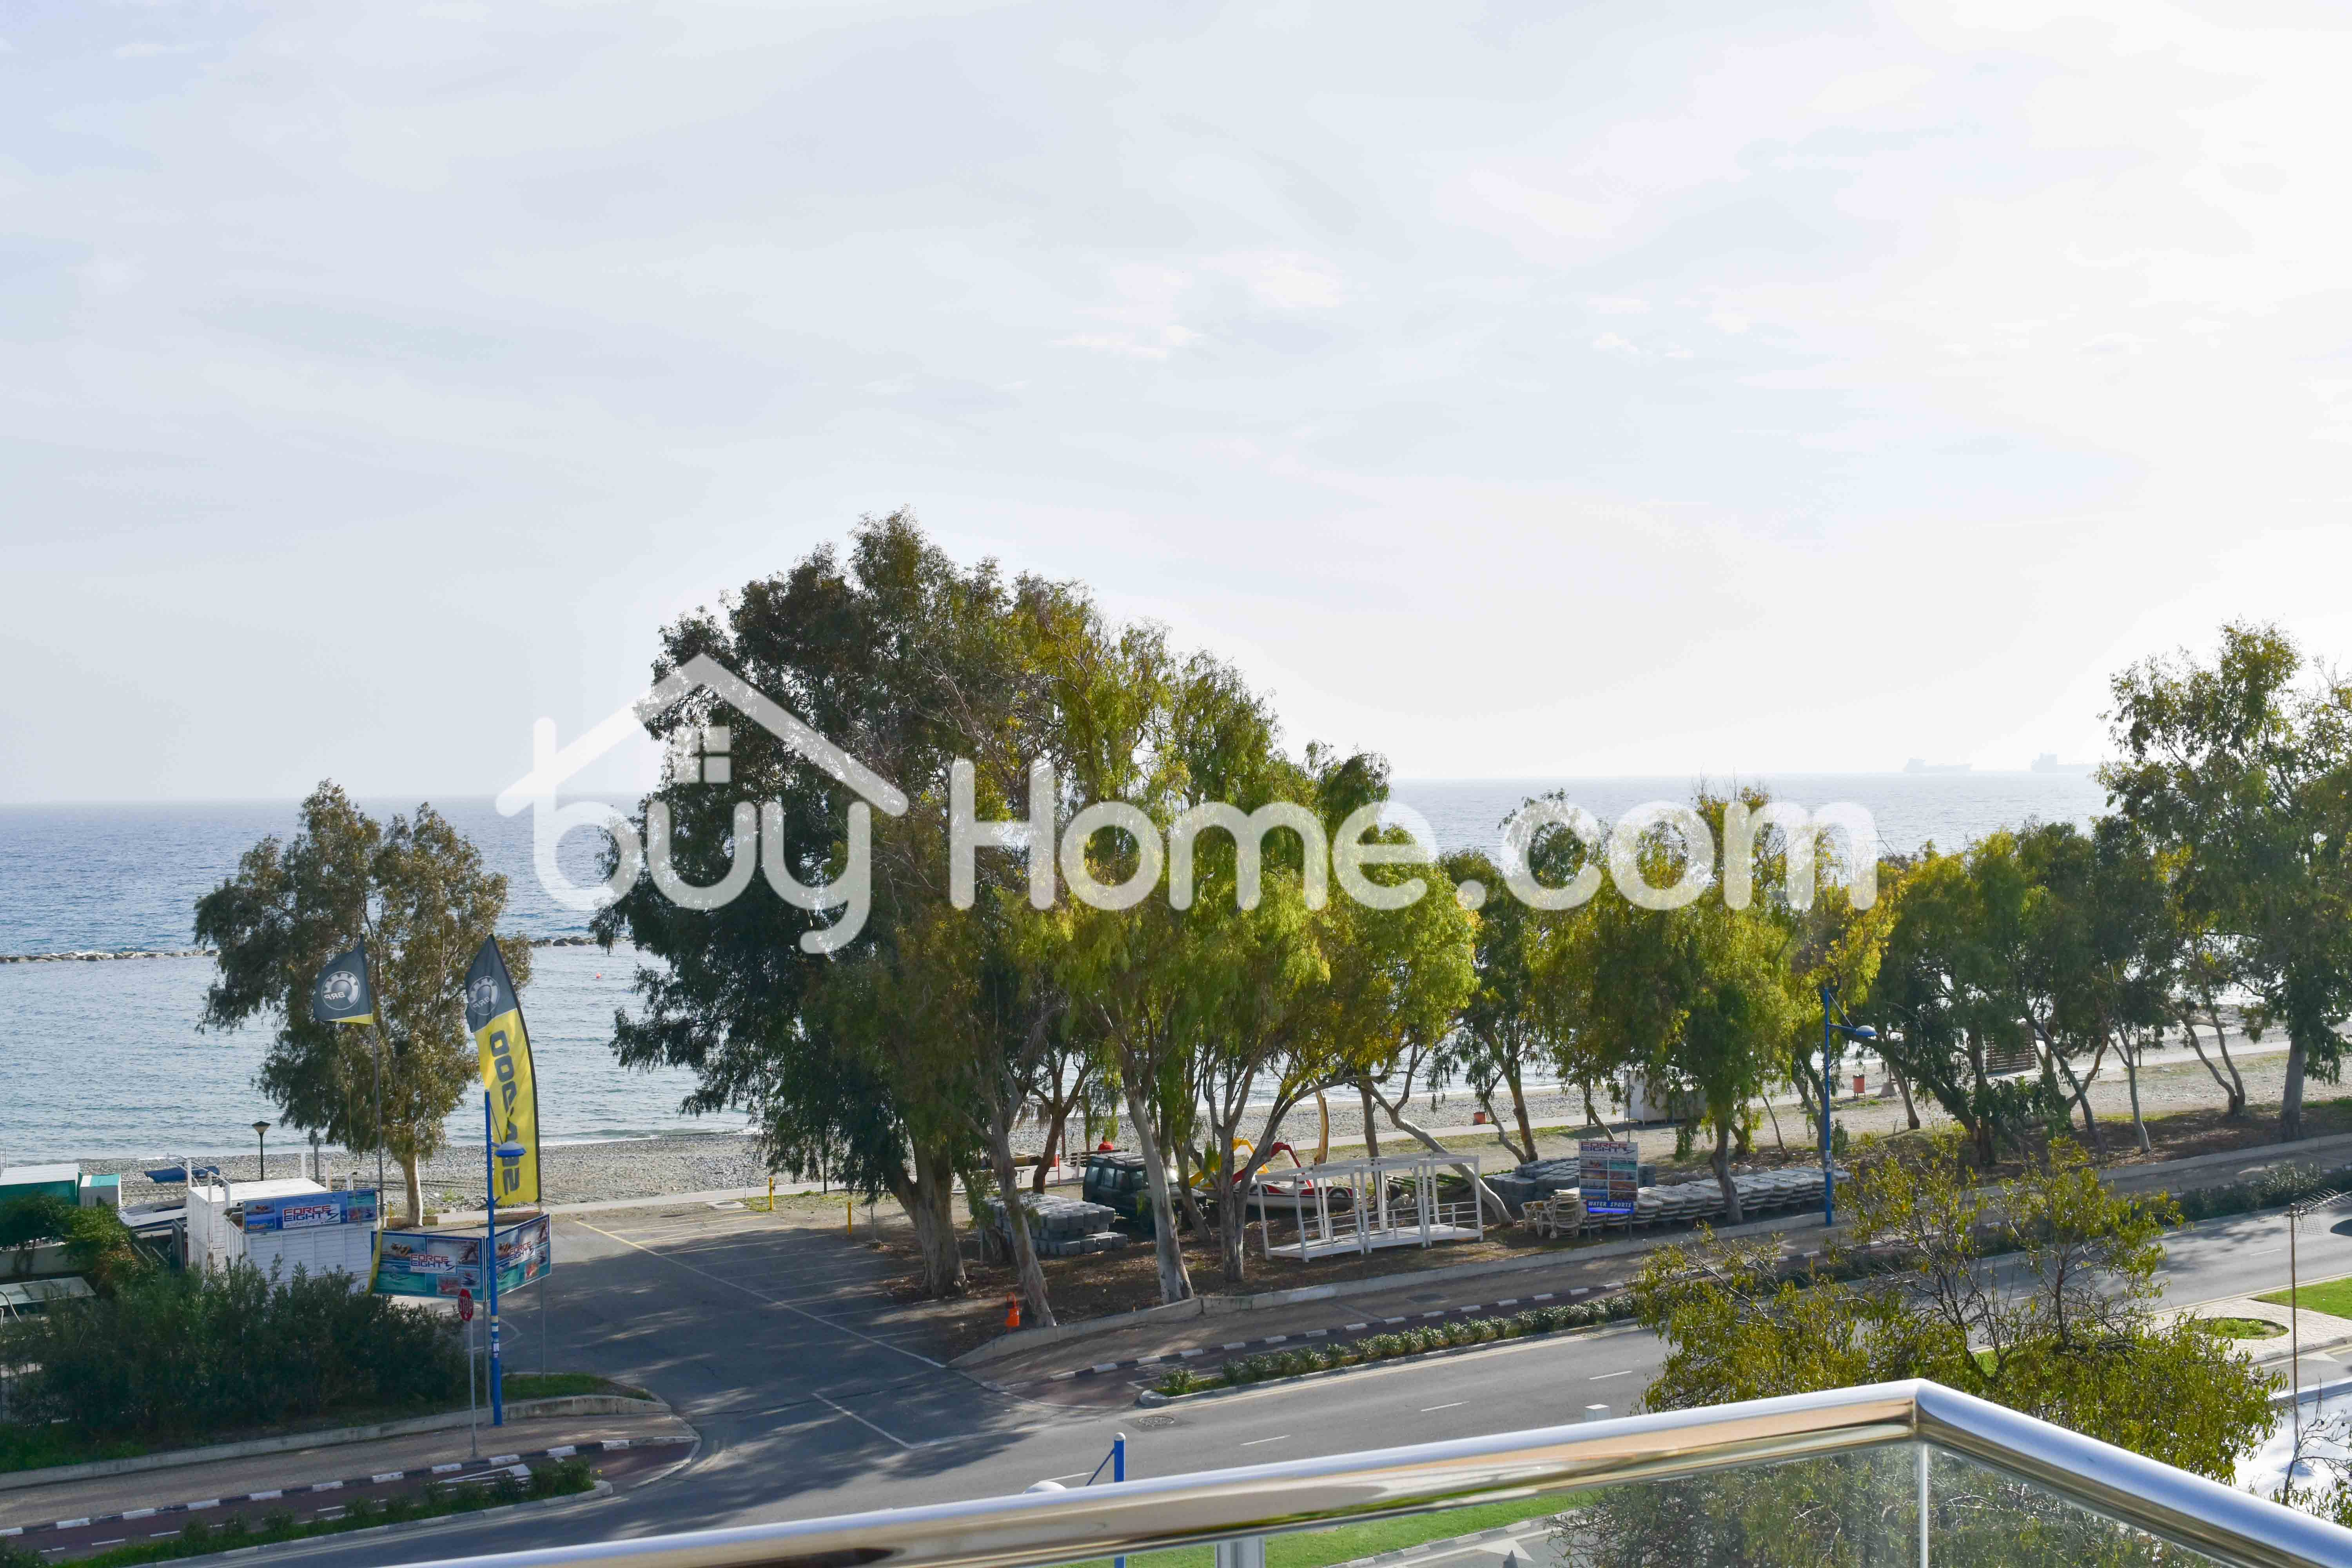 2 Bedroom Apartment With Unobstructed seaview | BuyHome